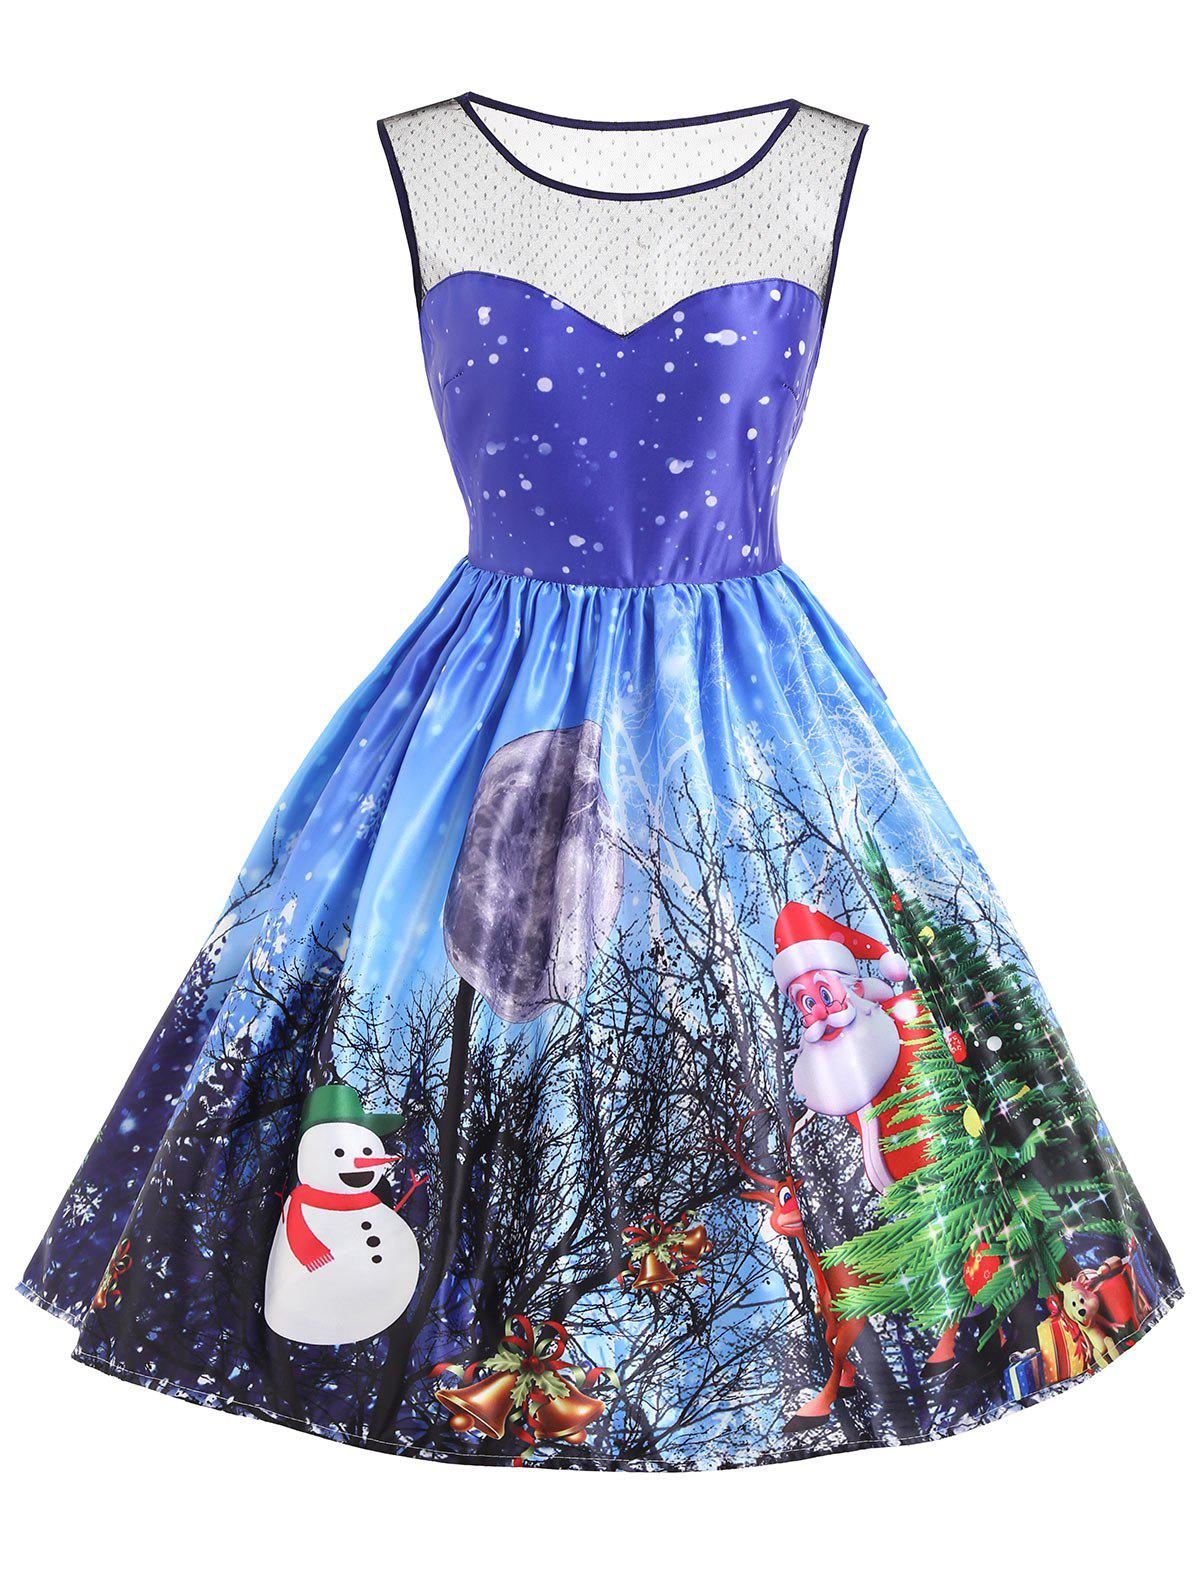 Christmas Santa Claus Snowman Mesh Insert DressWOMEN<br><br>Size: XL; Color: BLUE; Style: Vintage; Material: Cotton,Polyester; Silhouette: A-Line; Dresses Length: Knee-Length; Neckline: Round Collar; Sleeve Length: Sleeveless; Embellishment: Mesh; Pattern Type: Moon,Print; With Belt: No; Season: Fall,Spring,Summer; Weight: 0.3500kg; Package Contents: 1 x Dress;